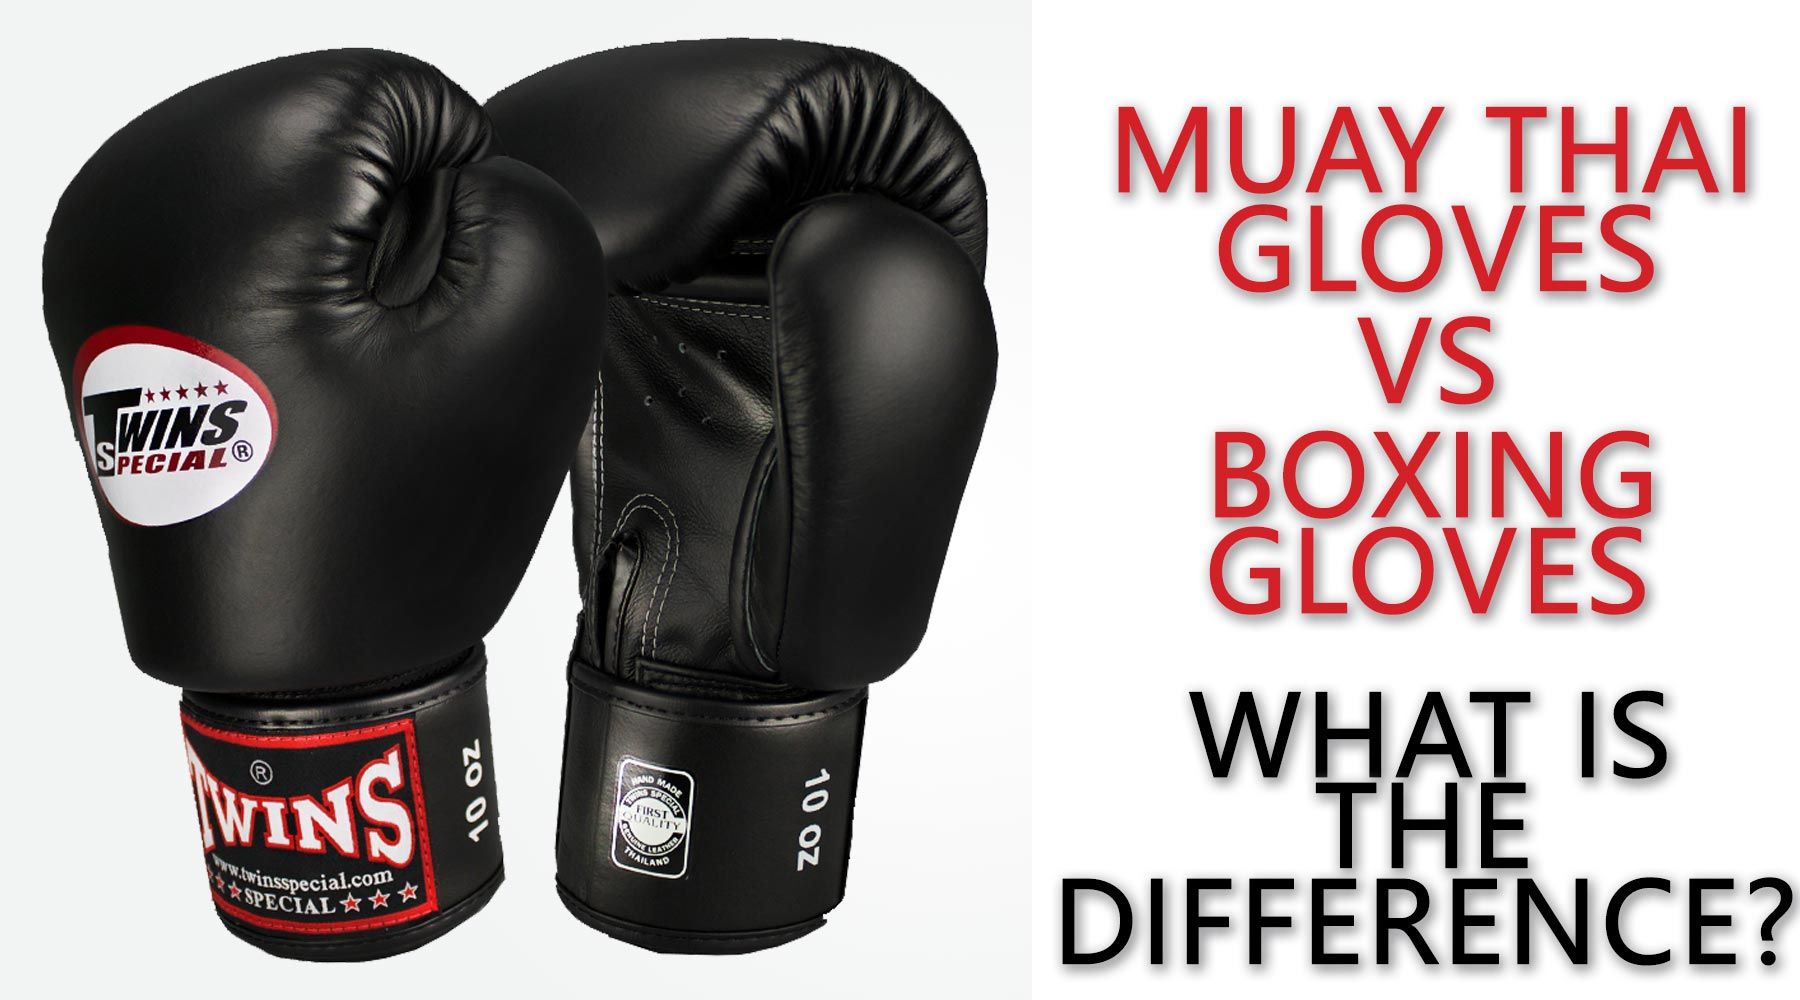 Muay Thai vs Boxing Gloves